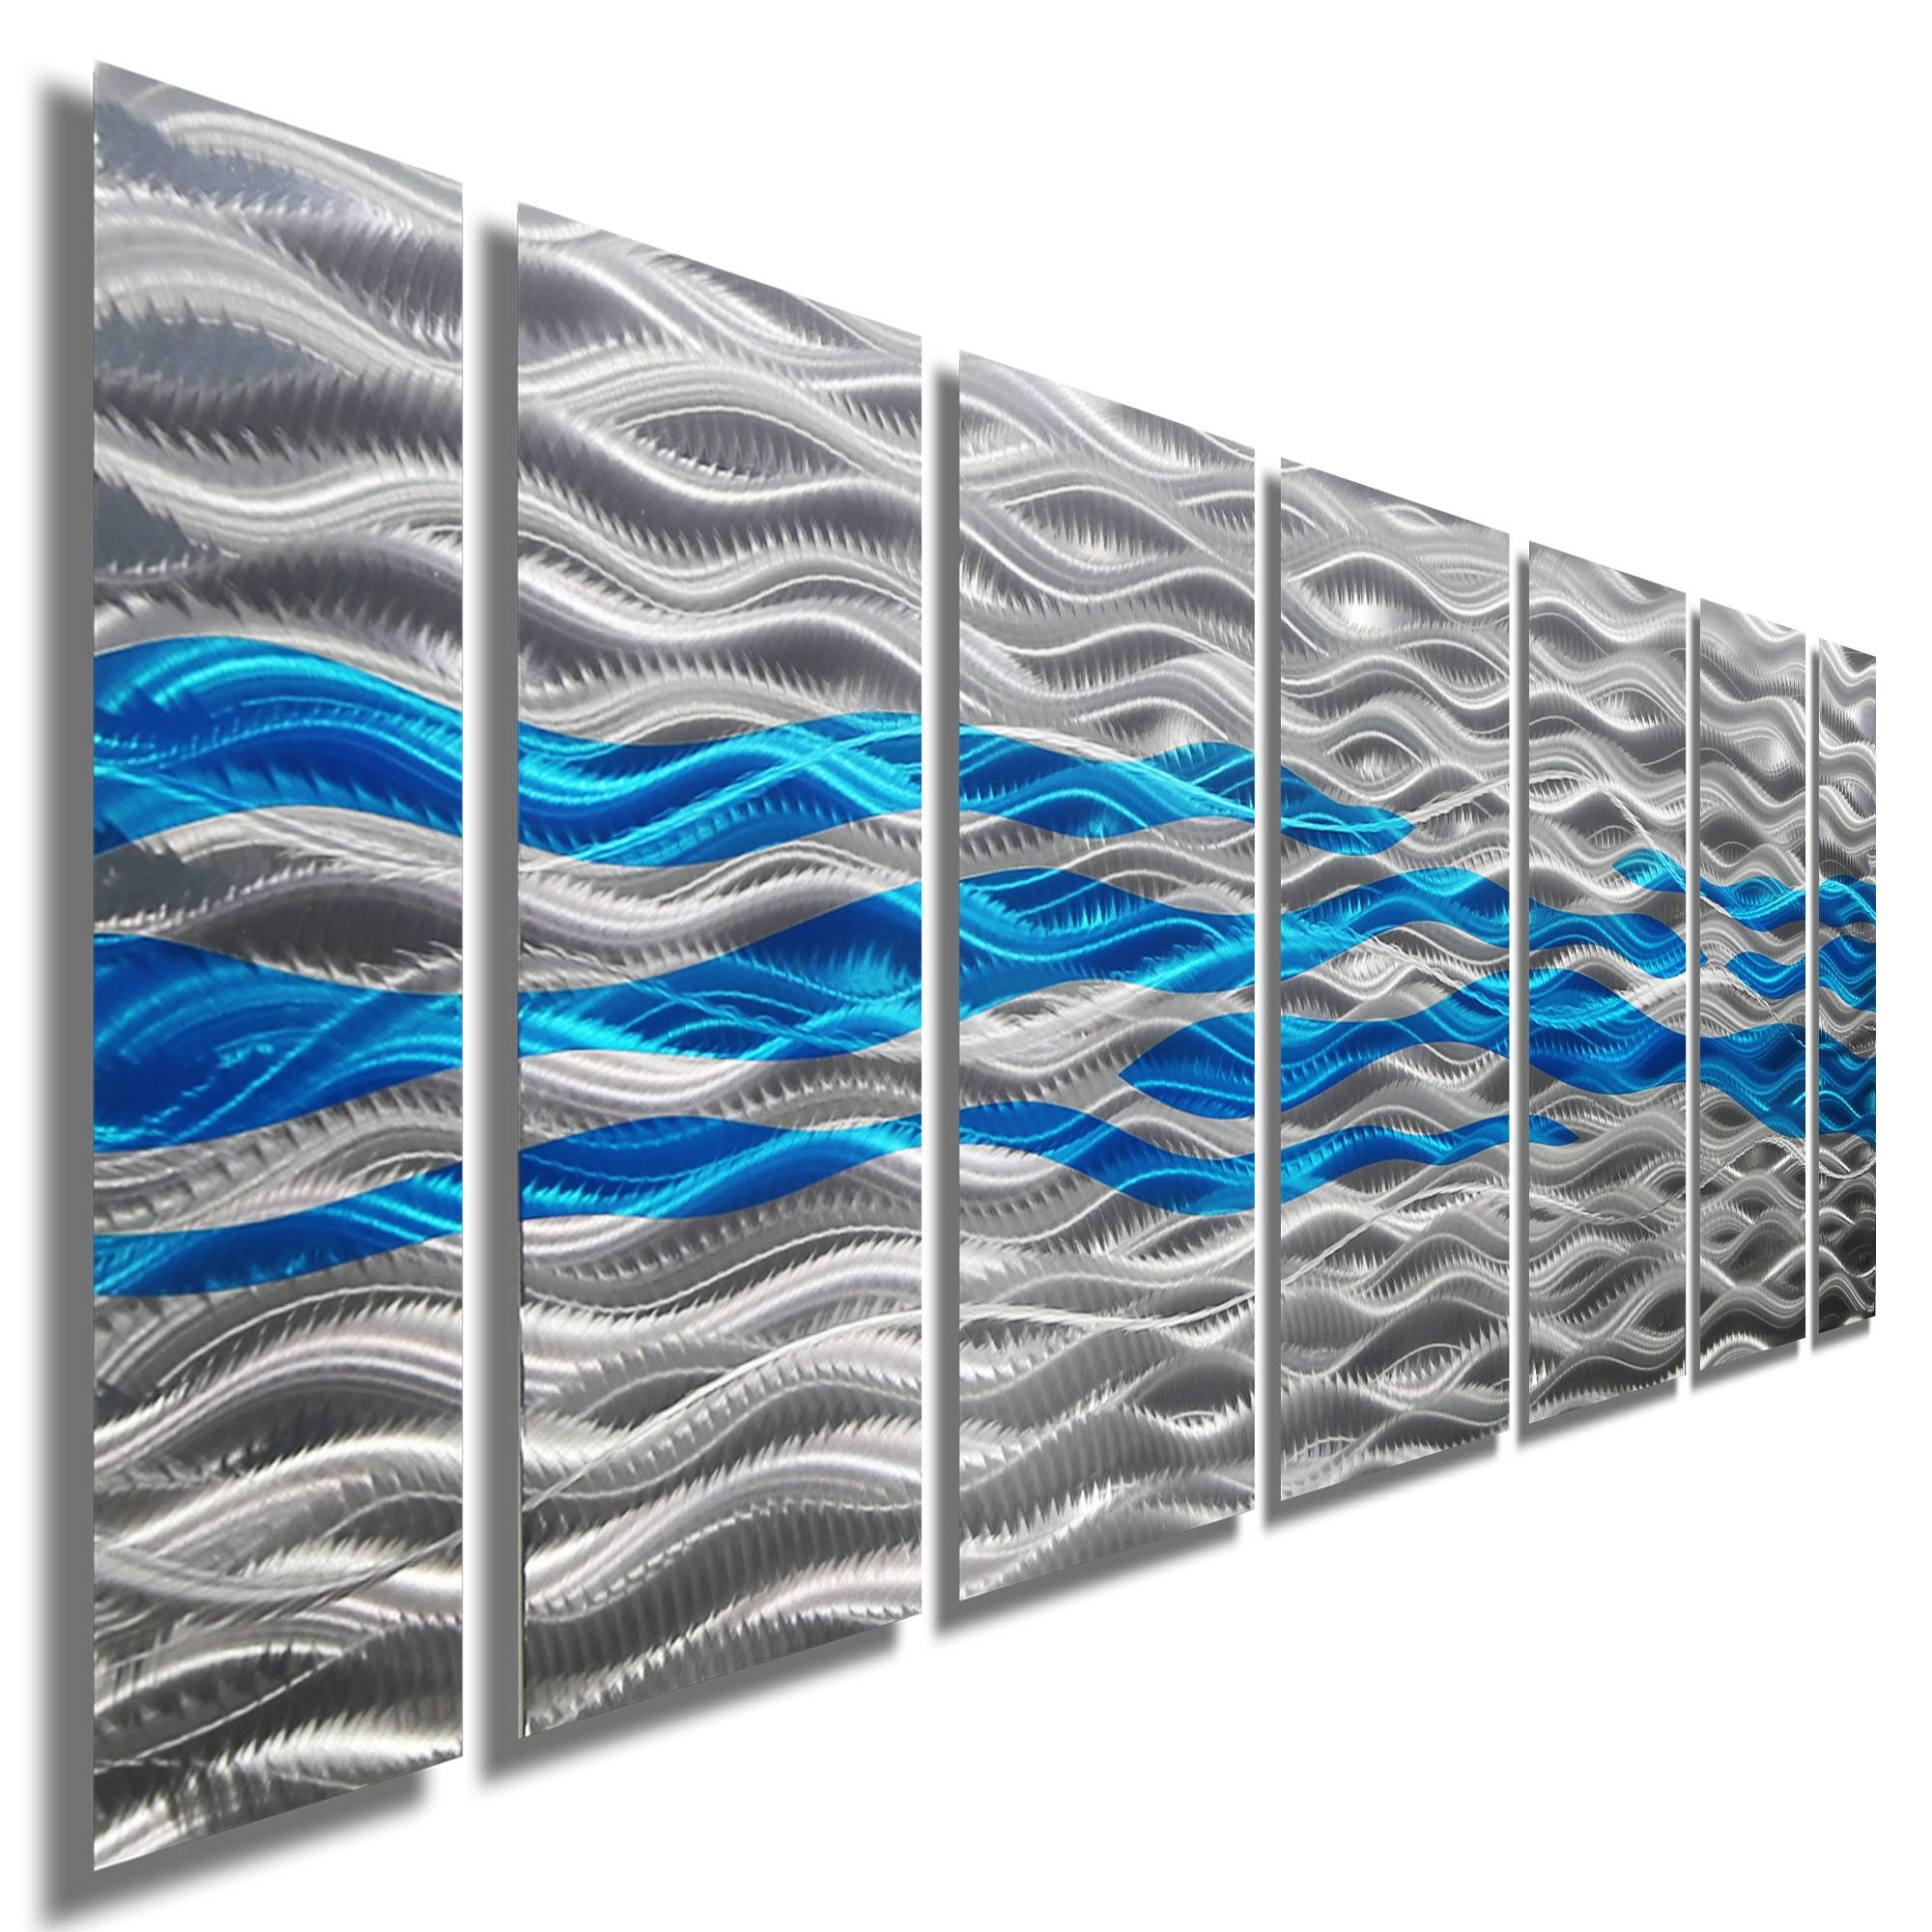 Caliente Aqua – Silver & Aqua Blue Abstract Metal Wall Artjon With Best And Newest Blue And Silver Wall Art (View 13 of 20)